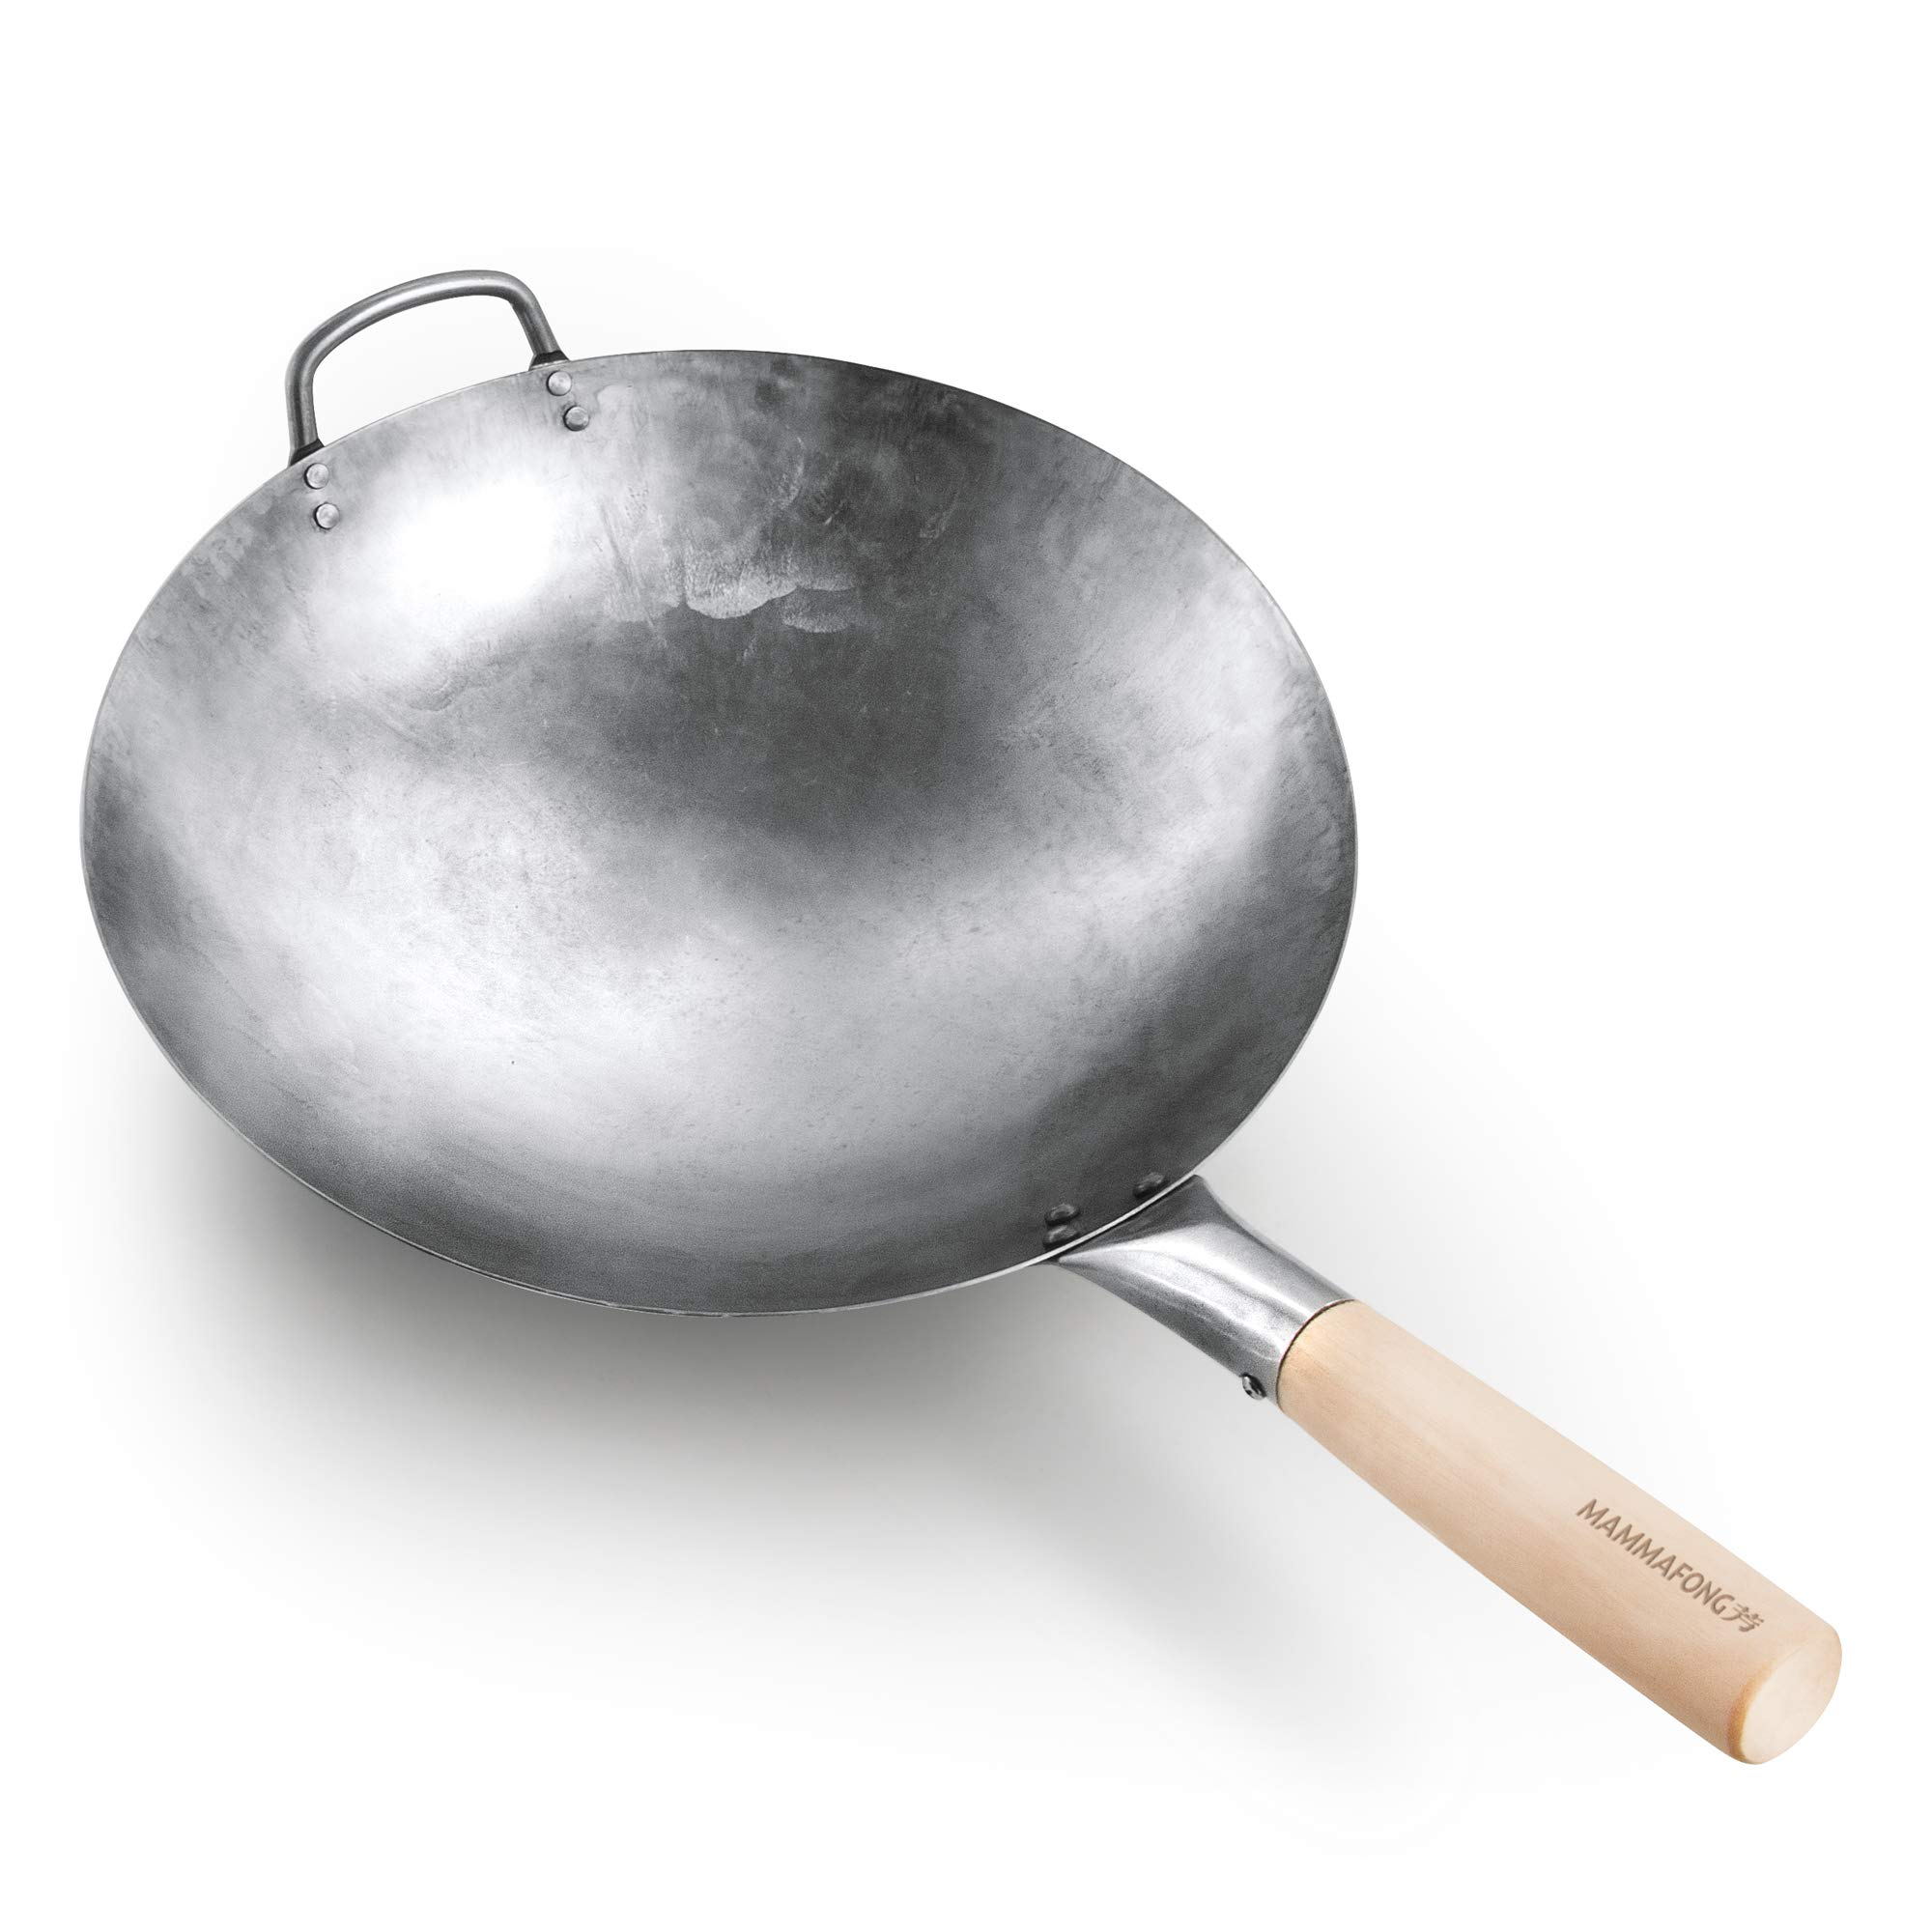 Authentic Hand Hammered Wok, 14 Inch Carbon Steel Chinese Pow Wok, Traditional Round Bottom Wok by Mammafong